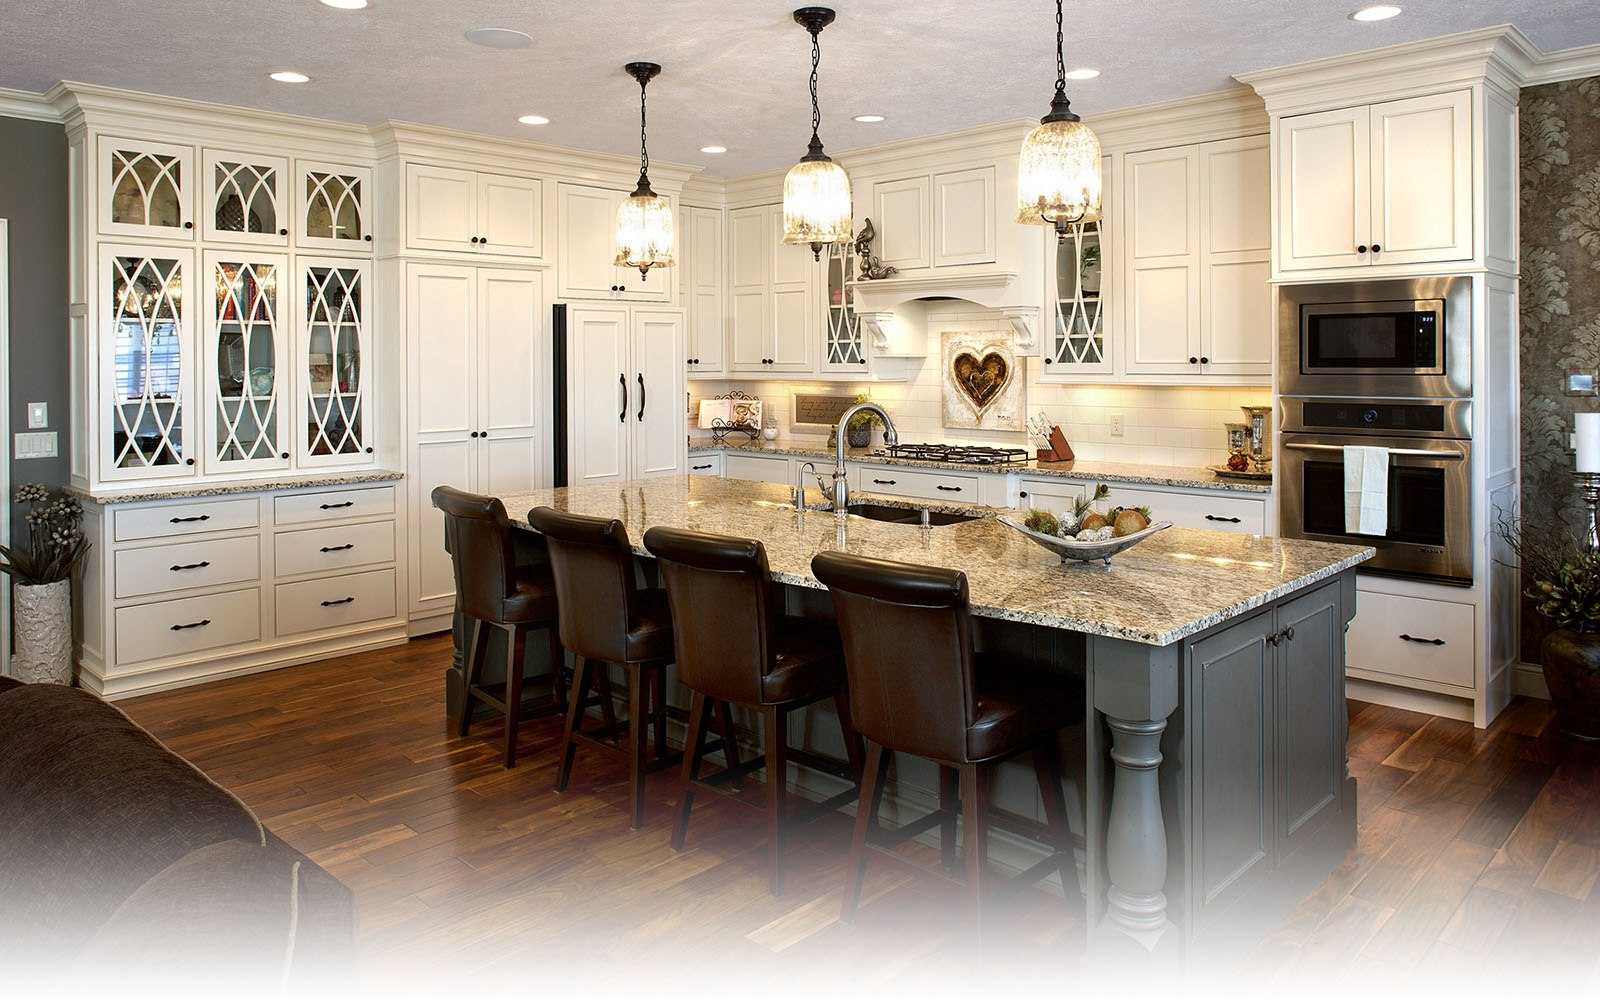 kitchen and bath cabinets design and remodeling norfolk kitchen kitchen remodels kitchen design kitchen remodels kitchen cabinets kitchen cabinets kitchen cabinets